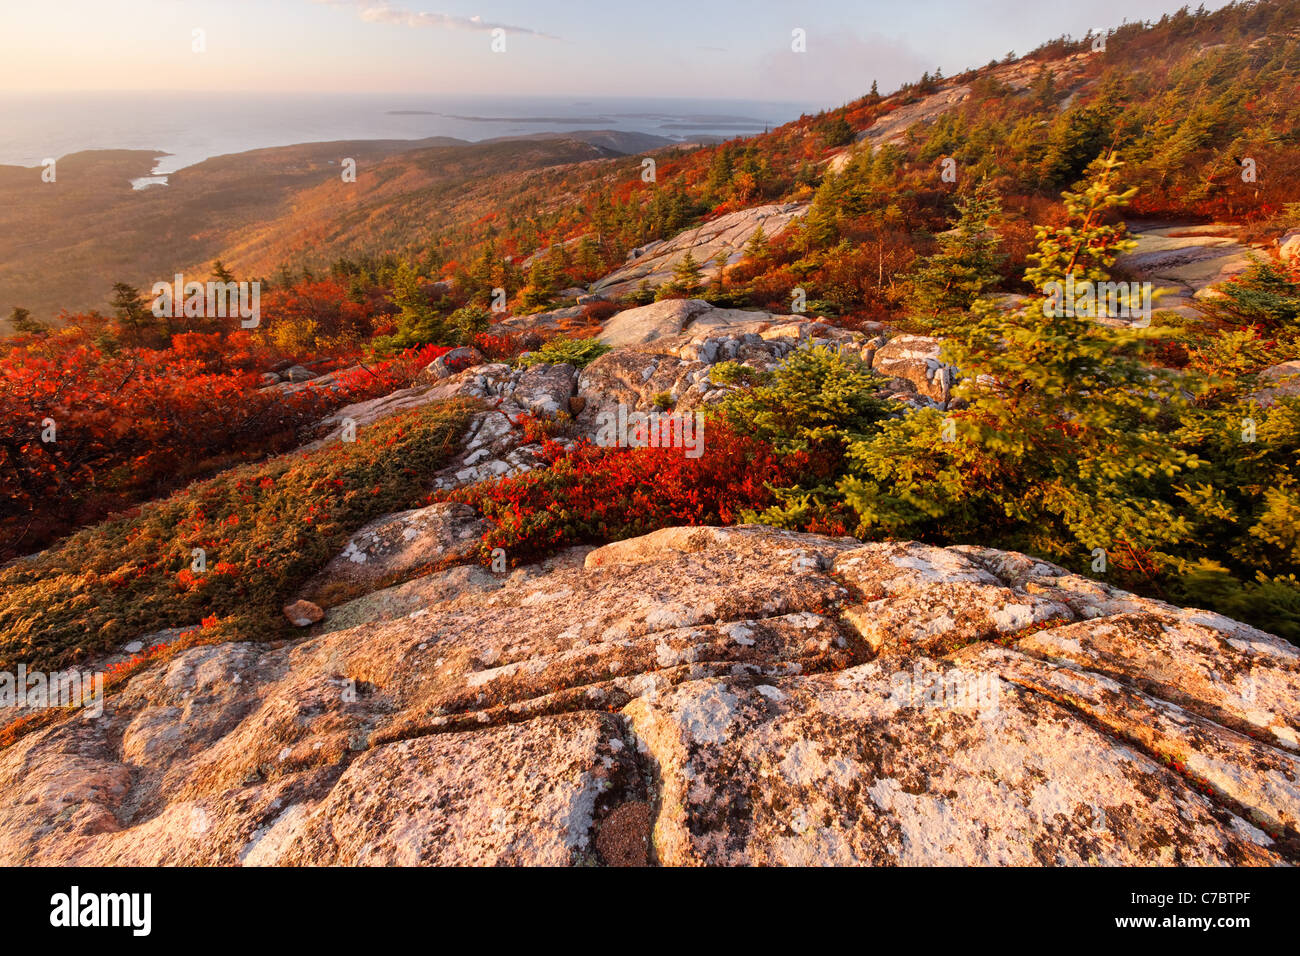 Fall color amidst granite bedrock on summit of Cadillac Mountain at